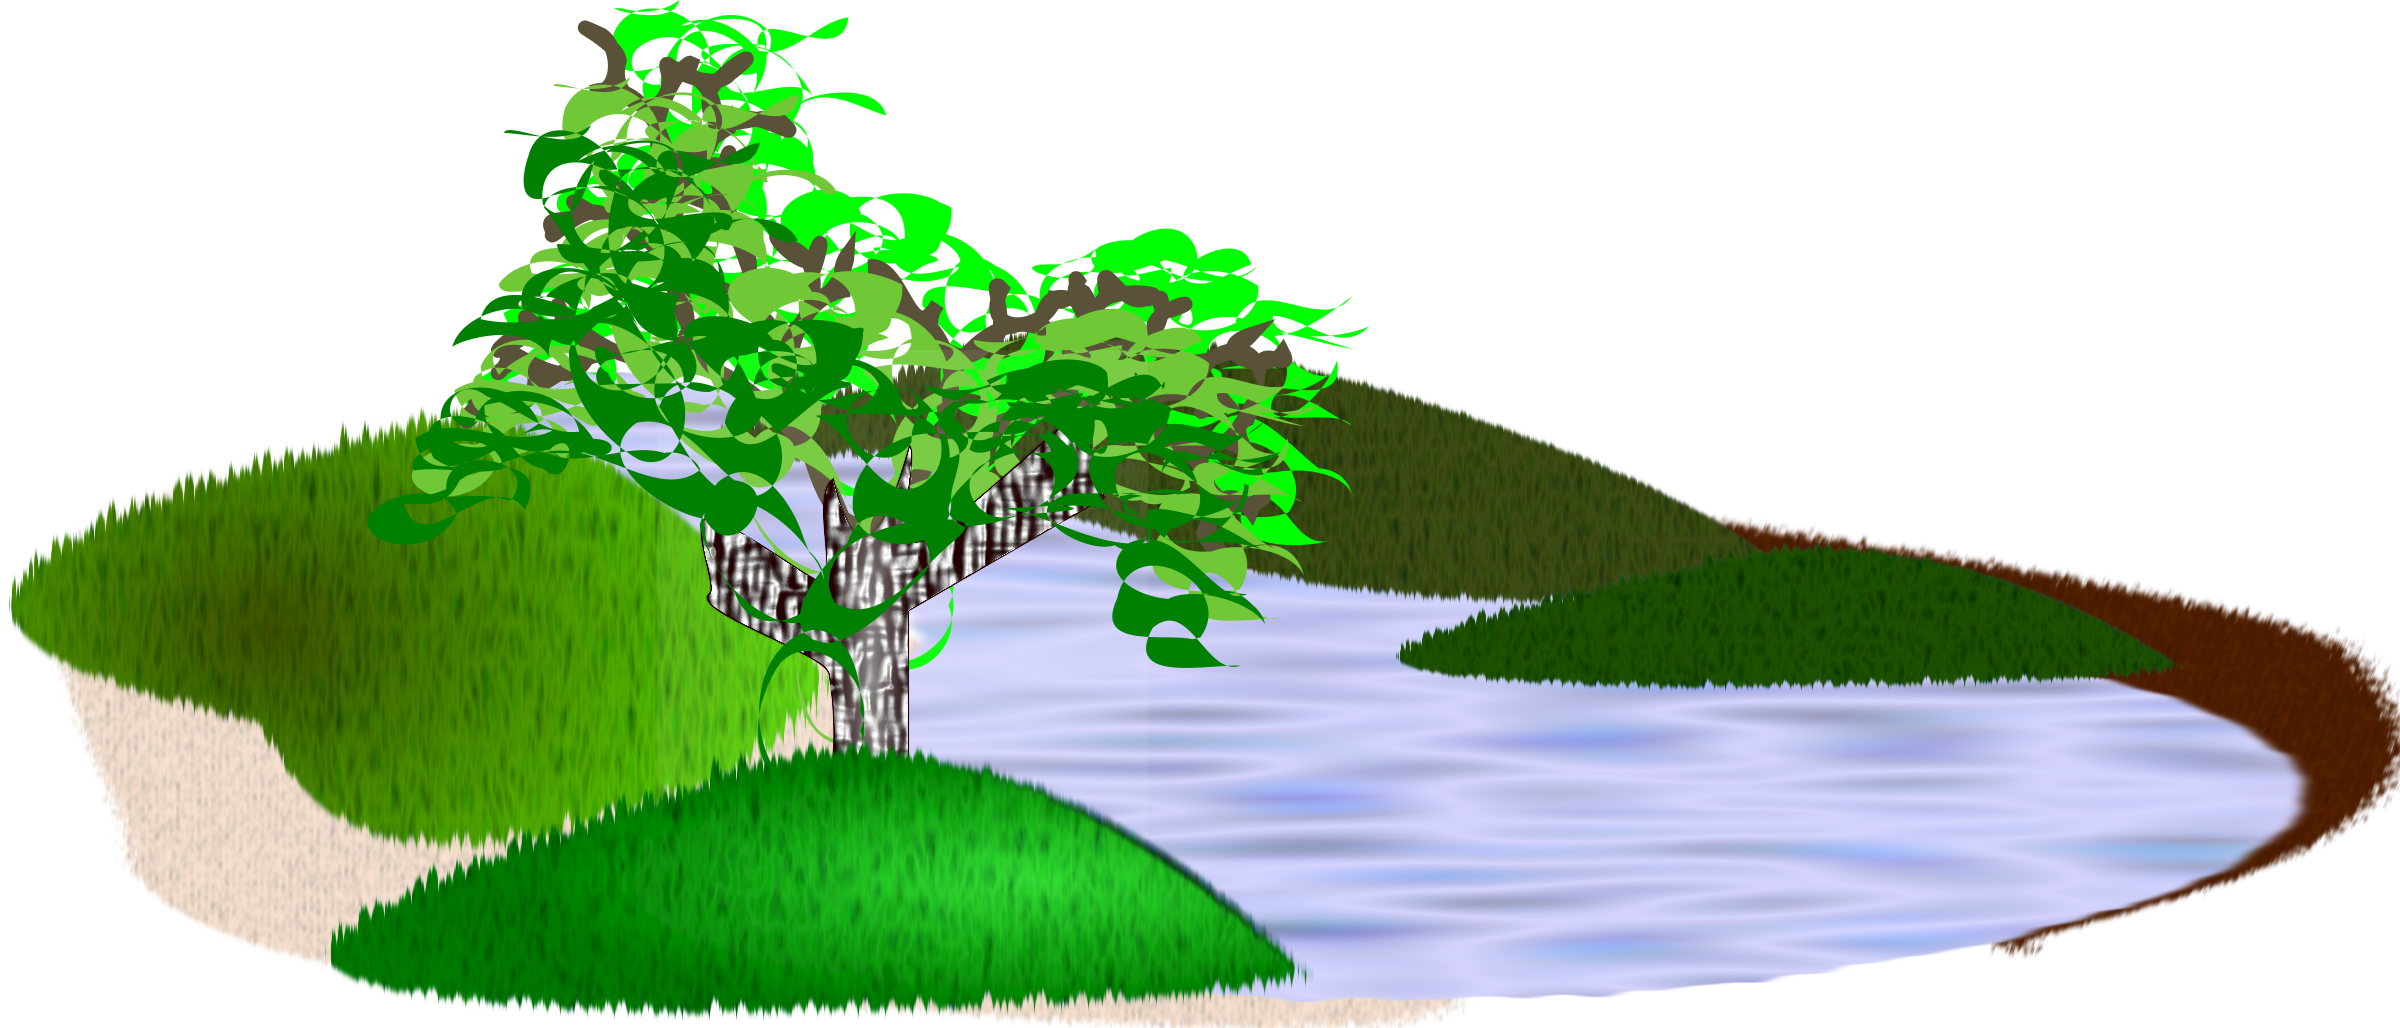 Scenery clipart nature park #2